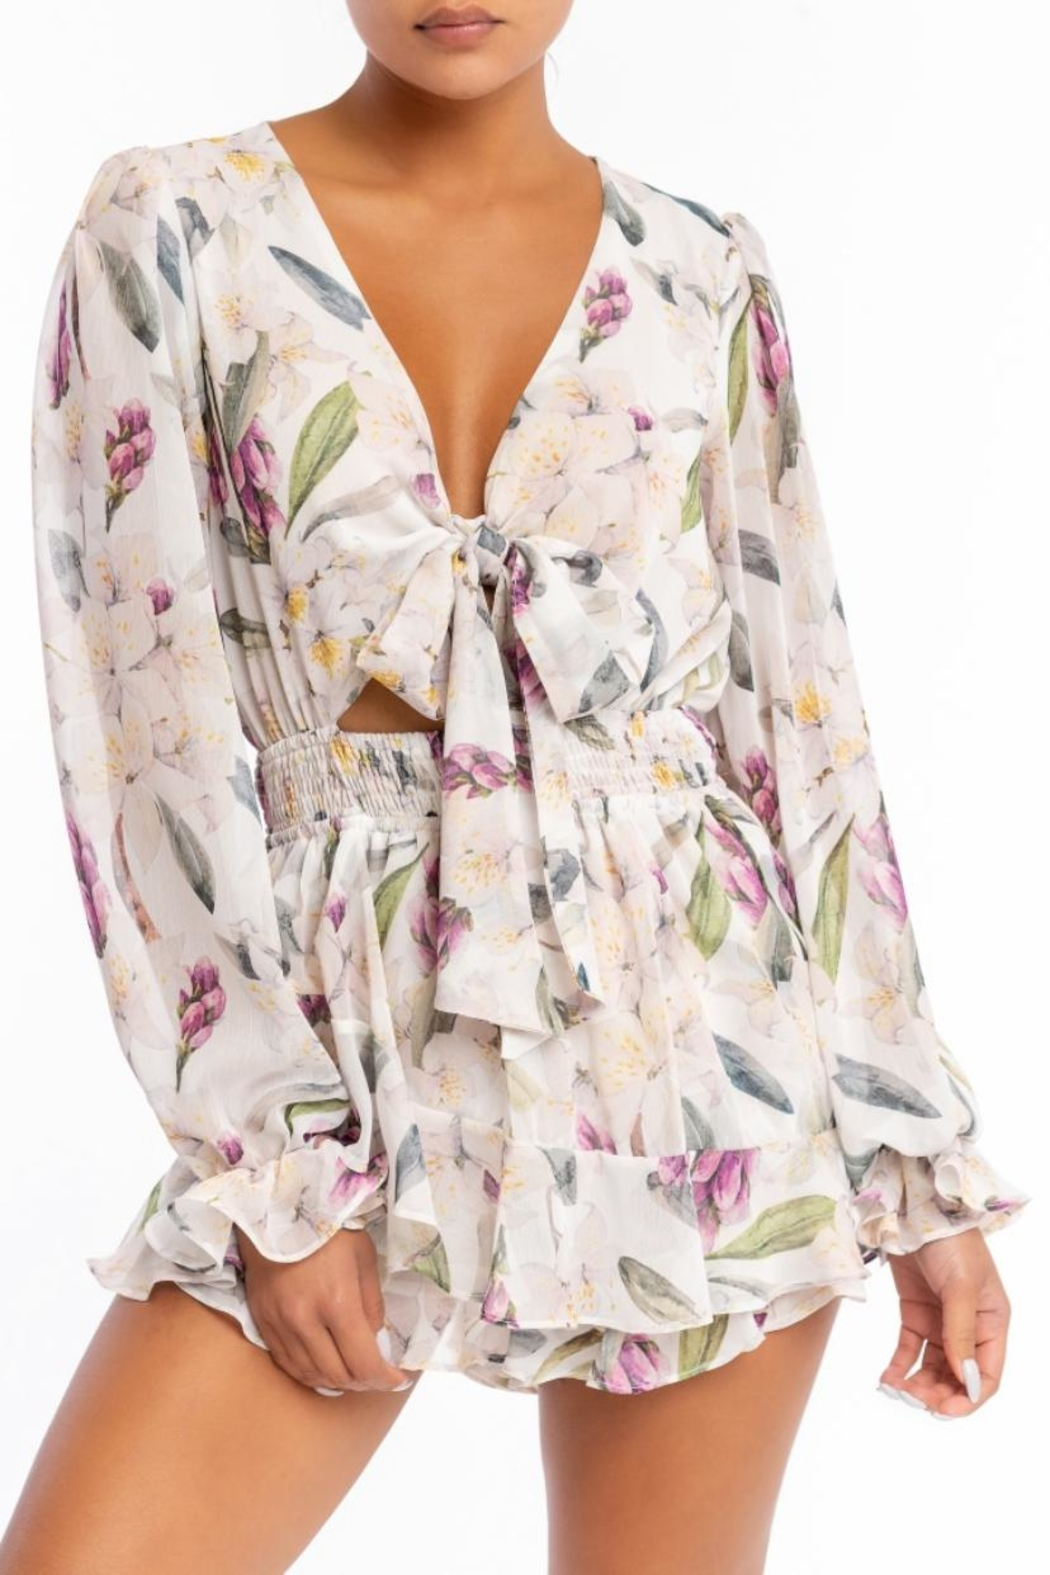 luxxel Floral Ruffle Romper - Main Image